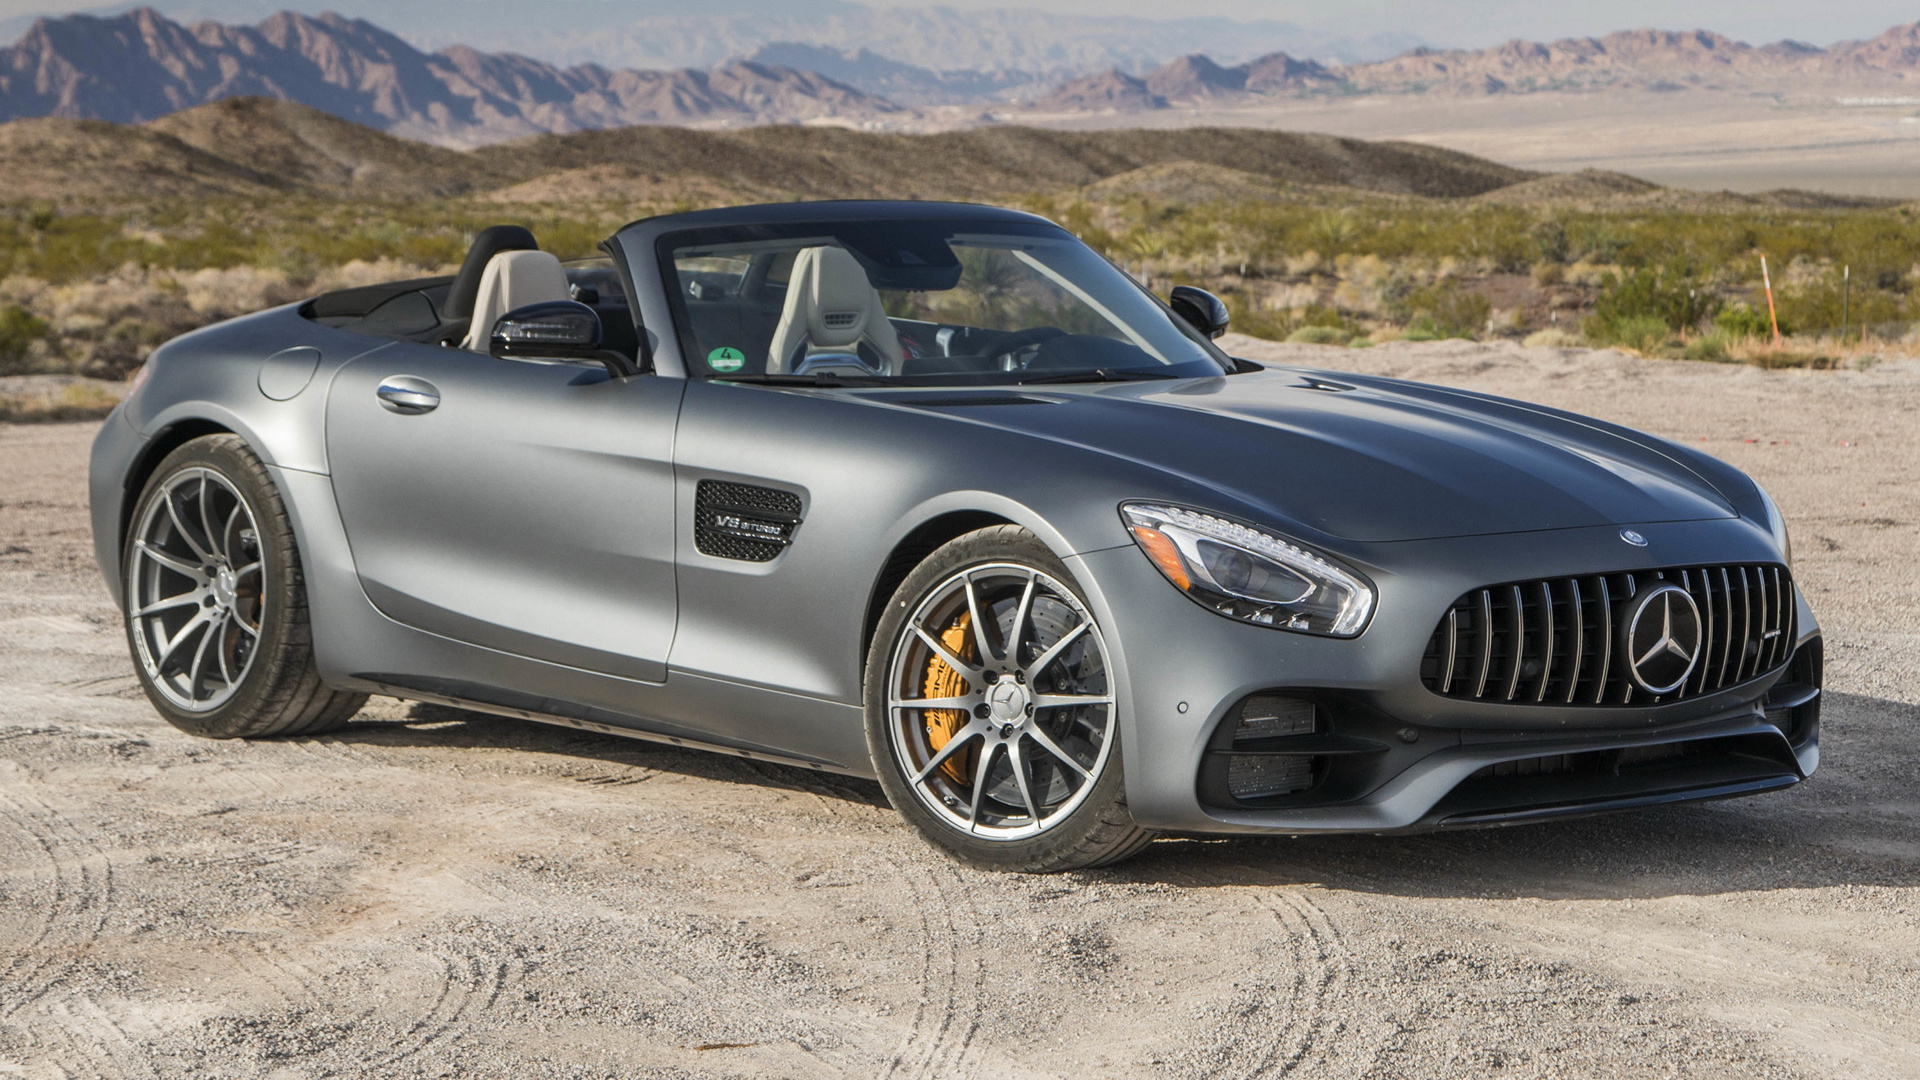 Mercedes-AMG GT C Roadster (2017) US Wallpapers and HD Images - Car ...